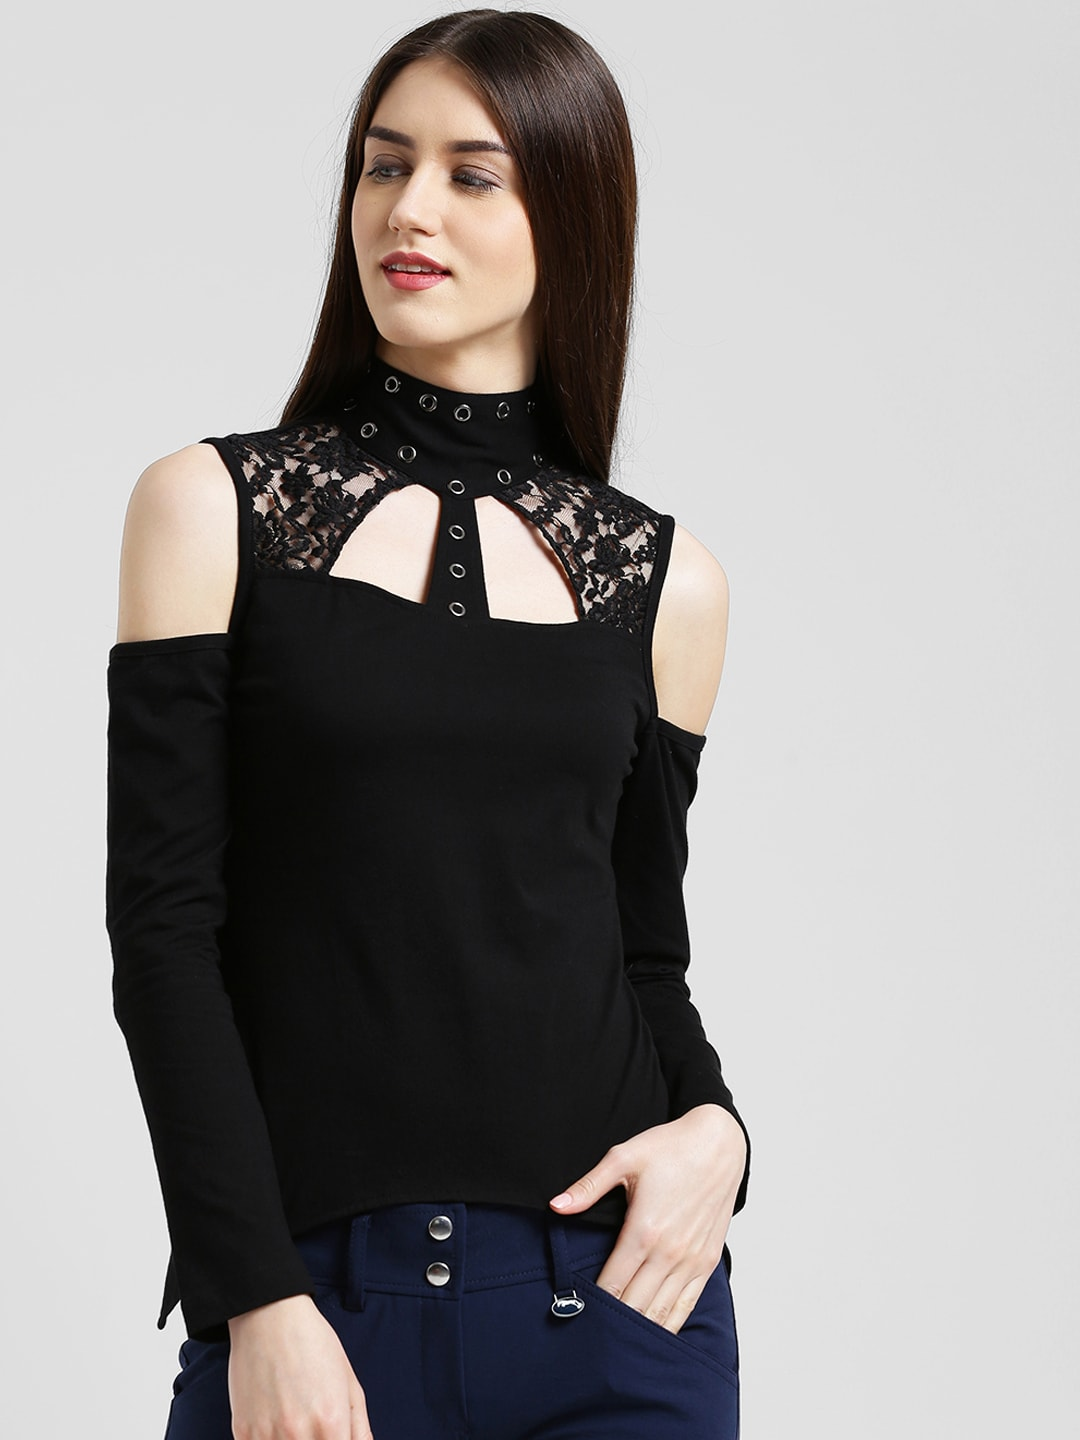 e5a74a11f1f5f Party Wear Tops - Buy Party Wear Tops for Women Online